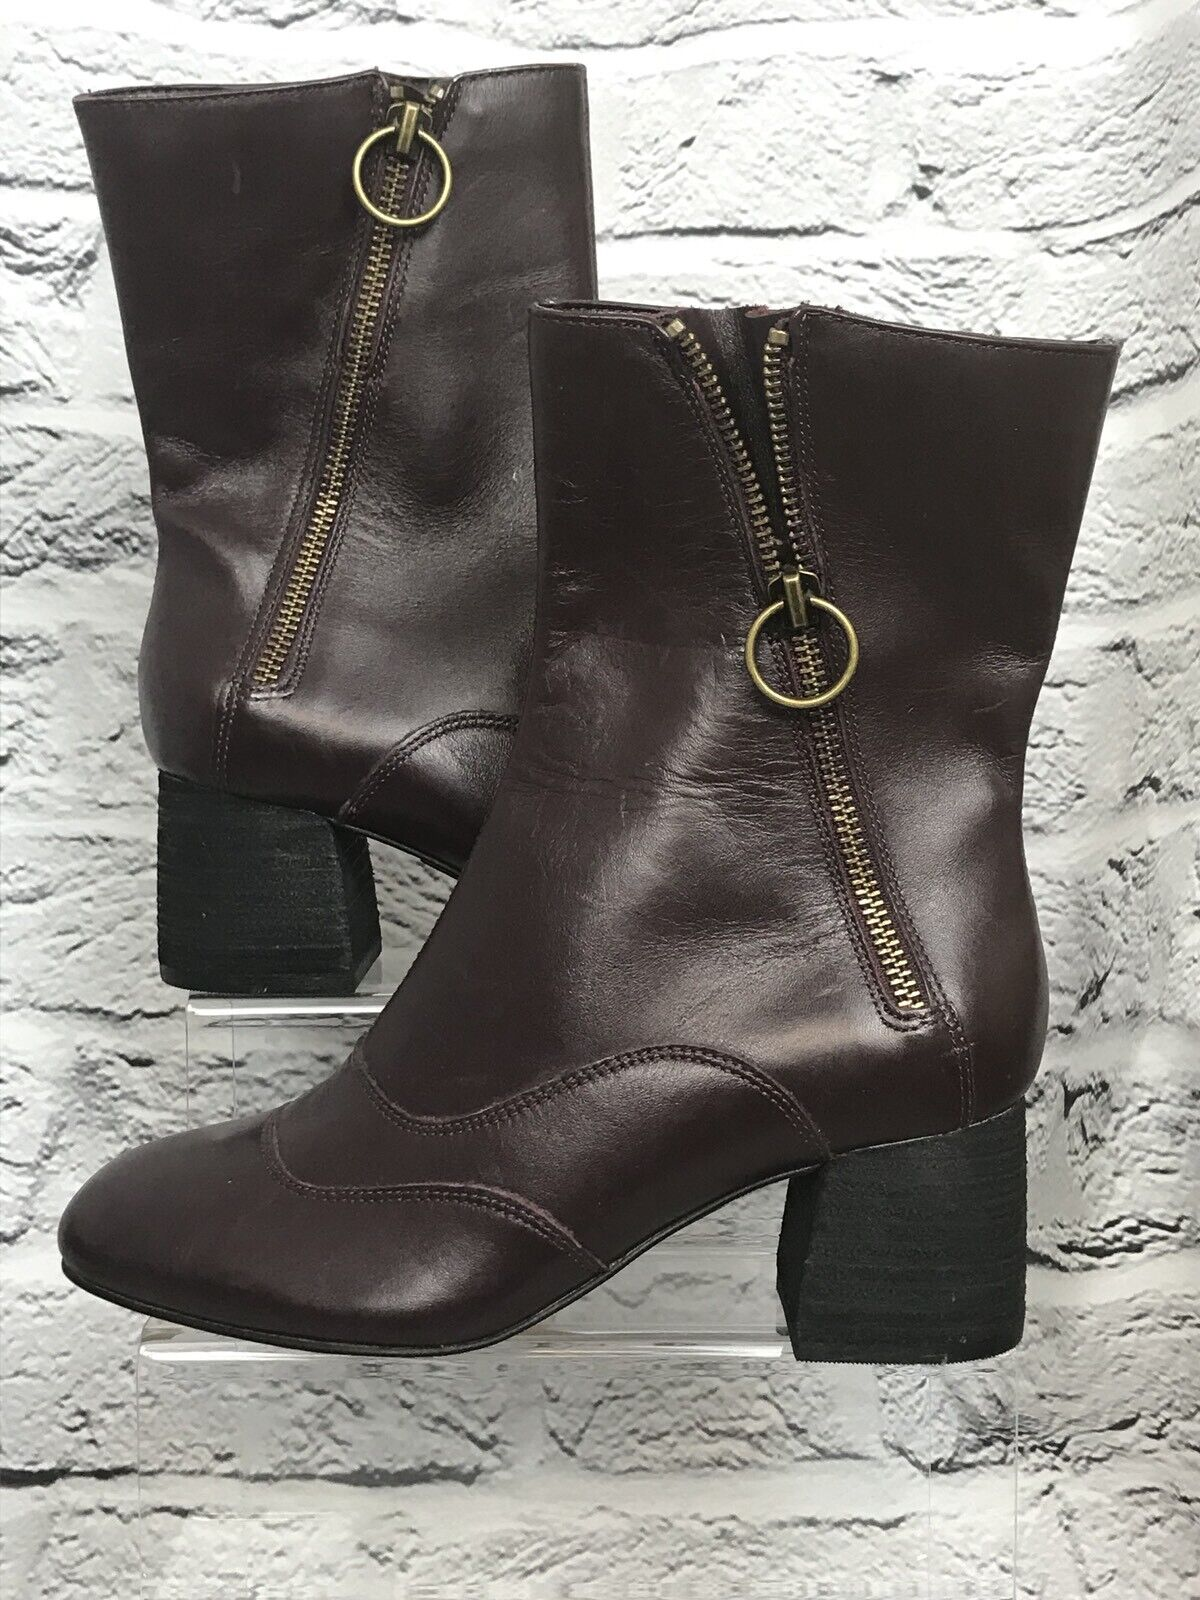 M&S Autograph Insolia Burgundy Boots New